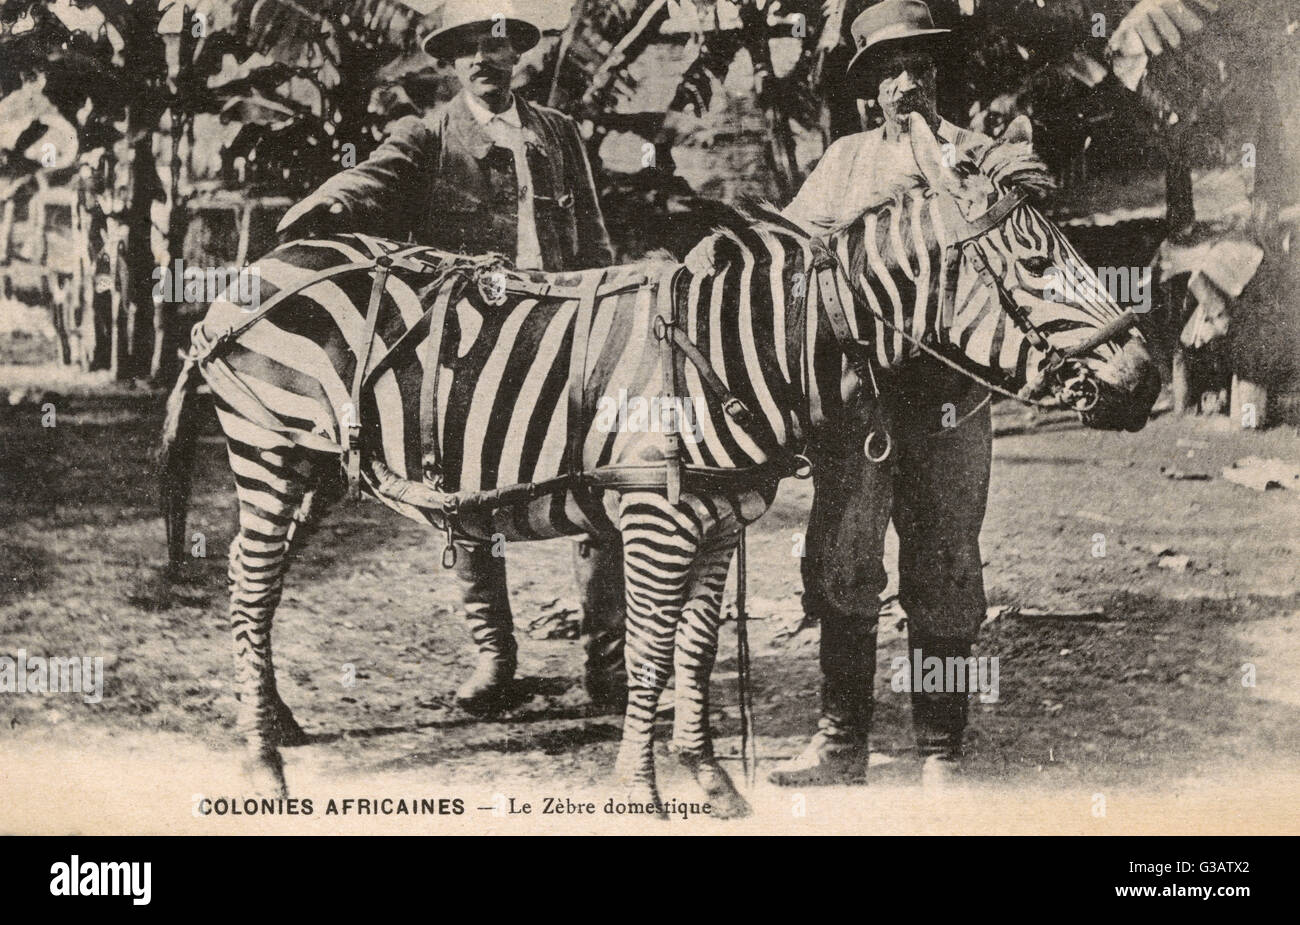 Gabon, Africa - Domesticated Zebra (seemingly used for pulling a carriage) and two colonials!     Date: circa 1910s - Stock Image